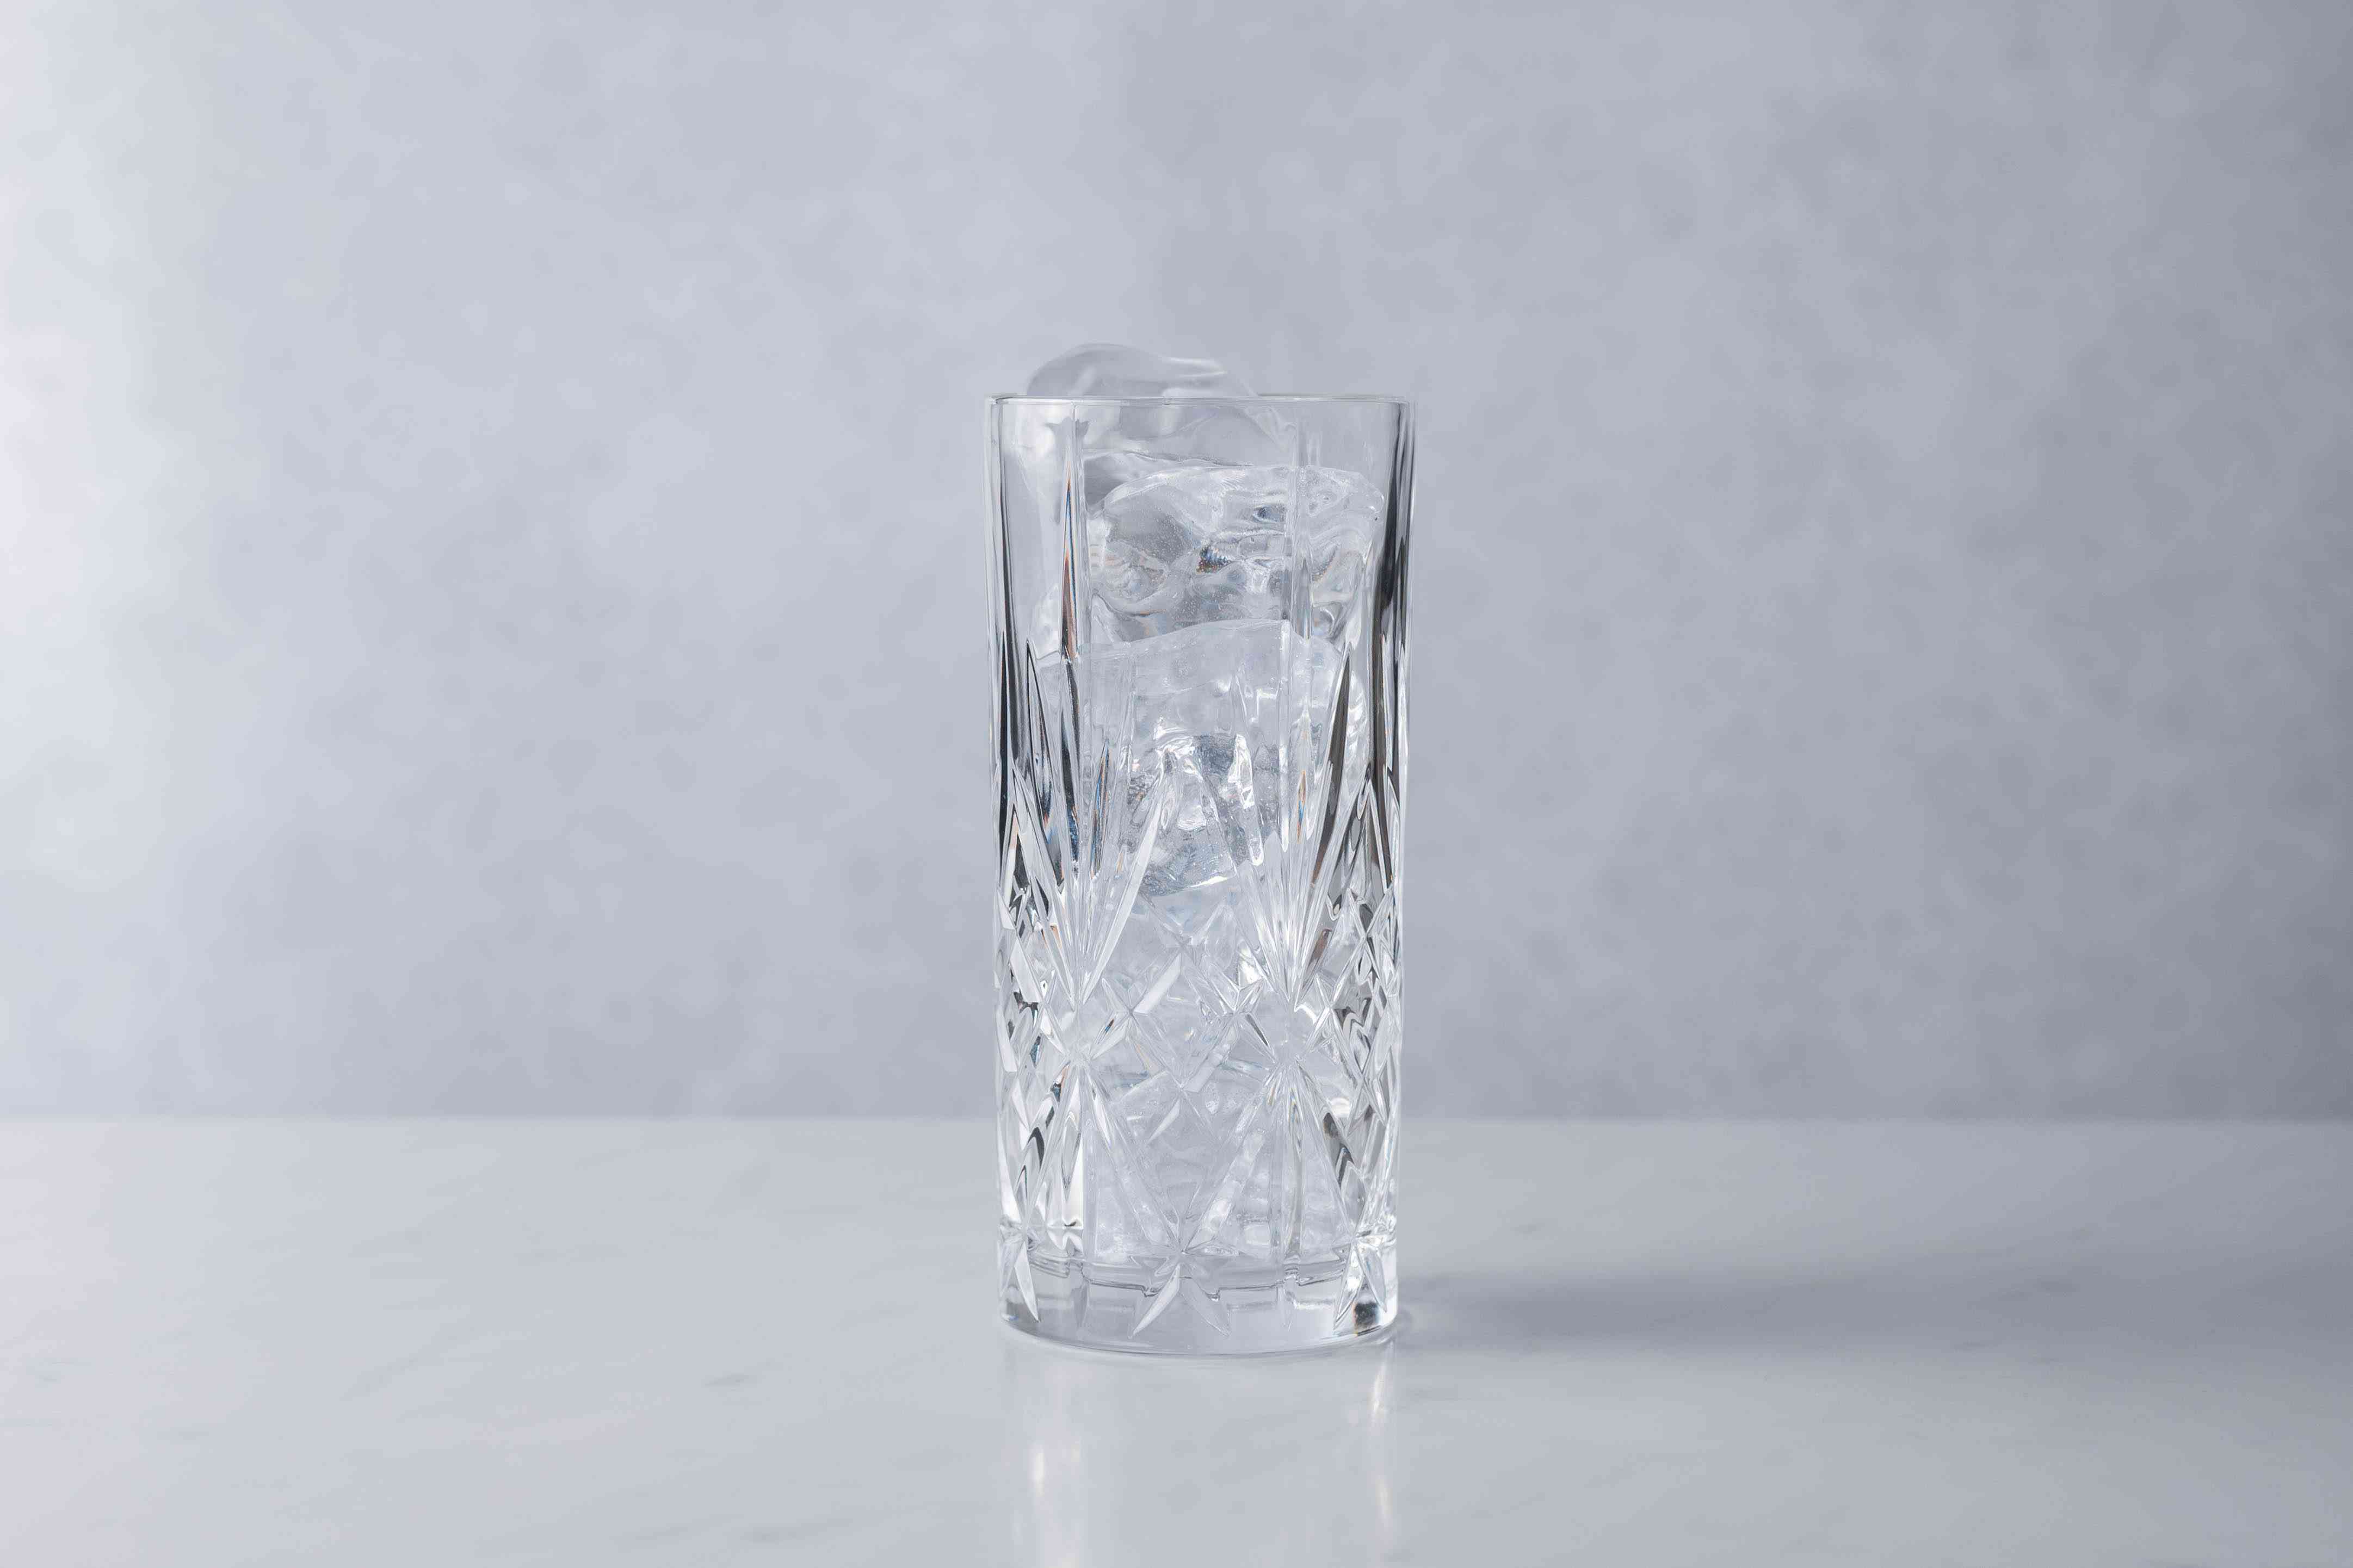 Fill a 12-ounce glass with ice cubes